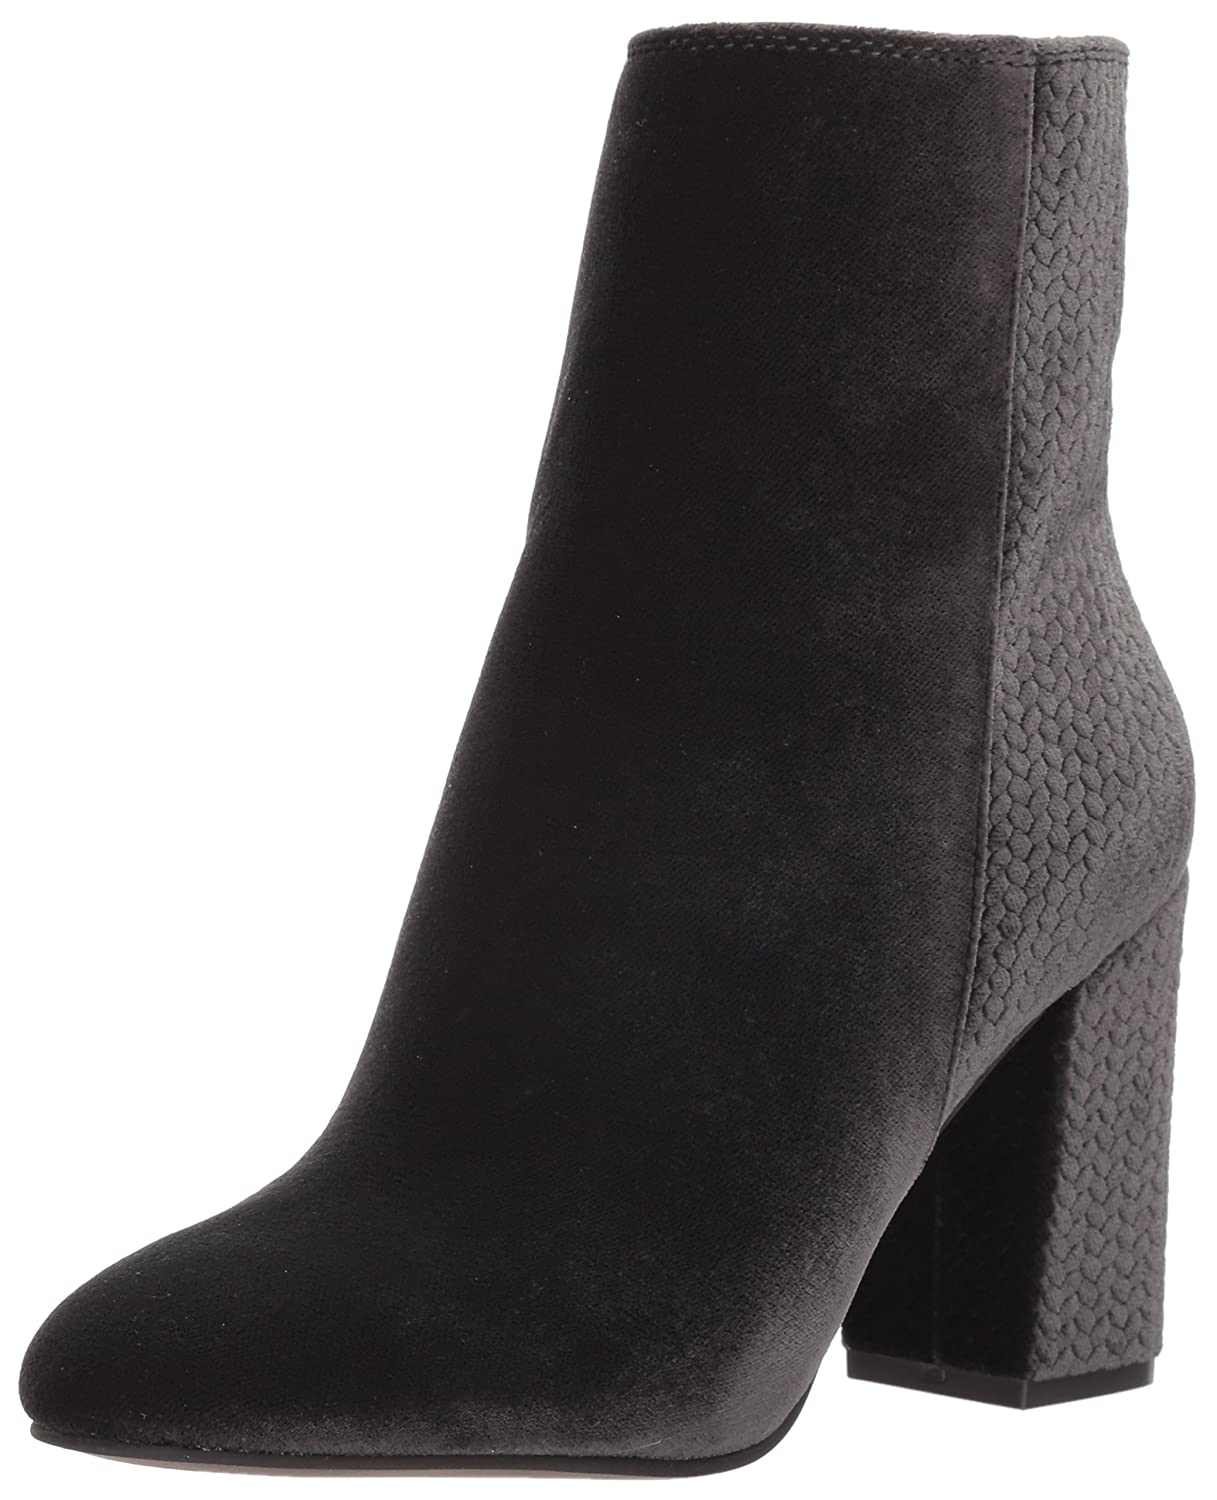 Lucky Brand Women's Wesson Ankle Boot B071R44BK9 5.5 M US|Storm